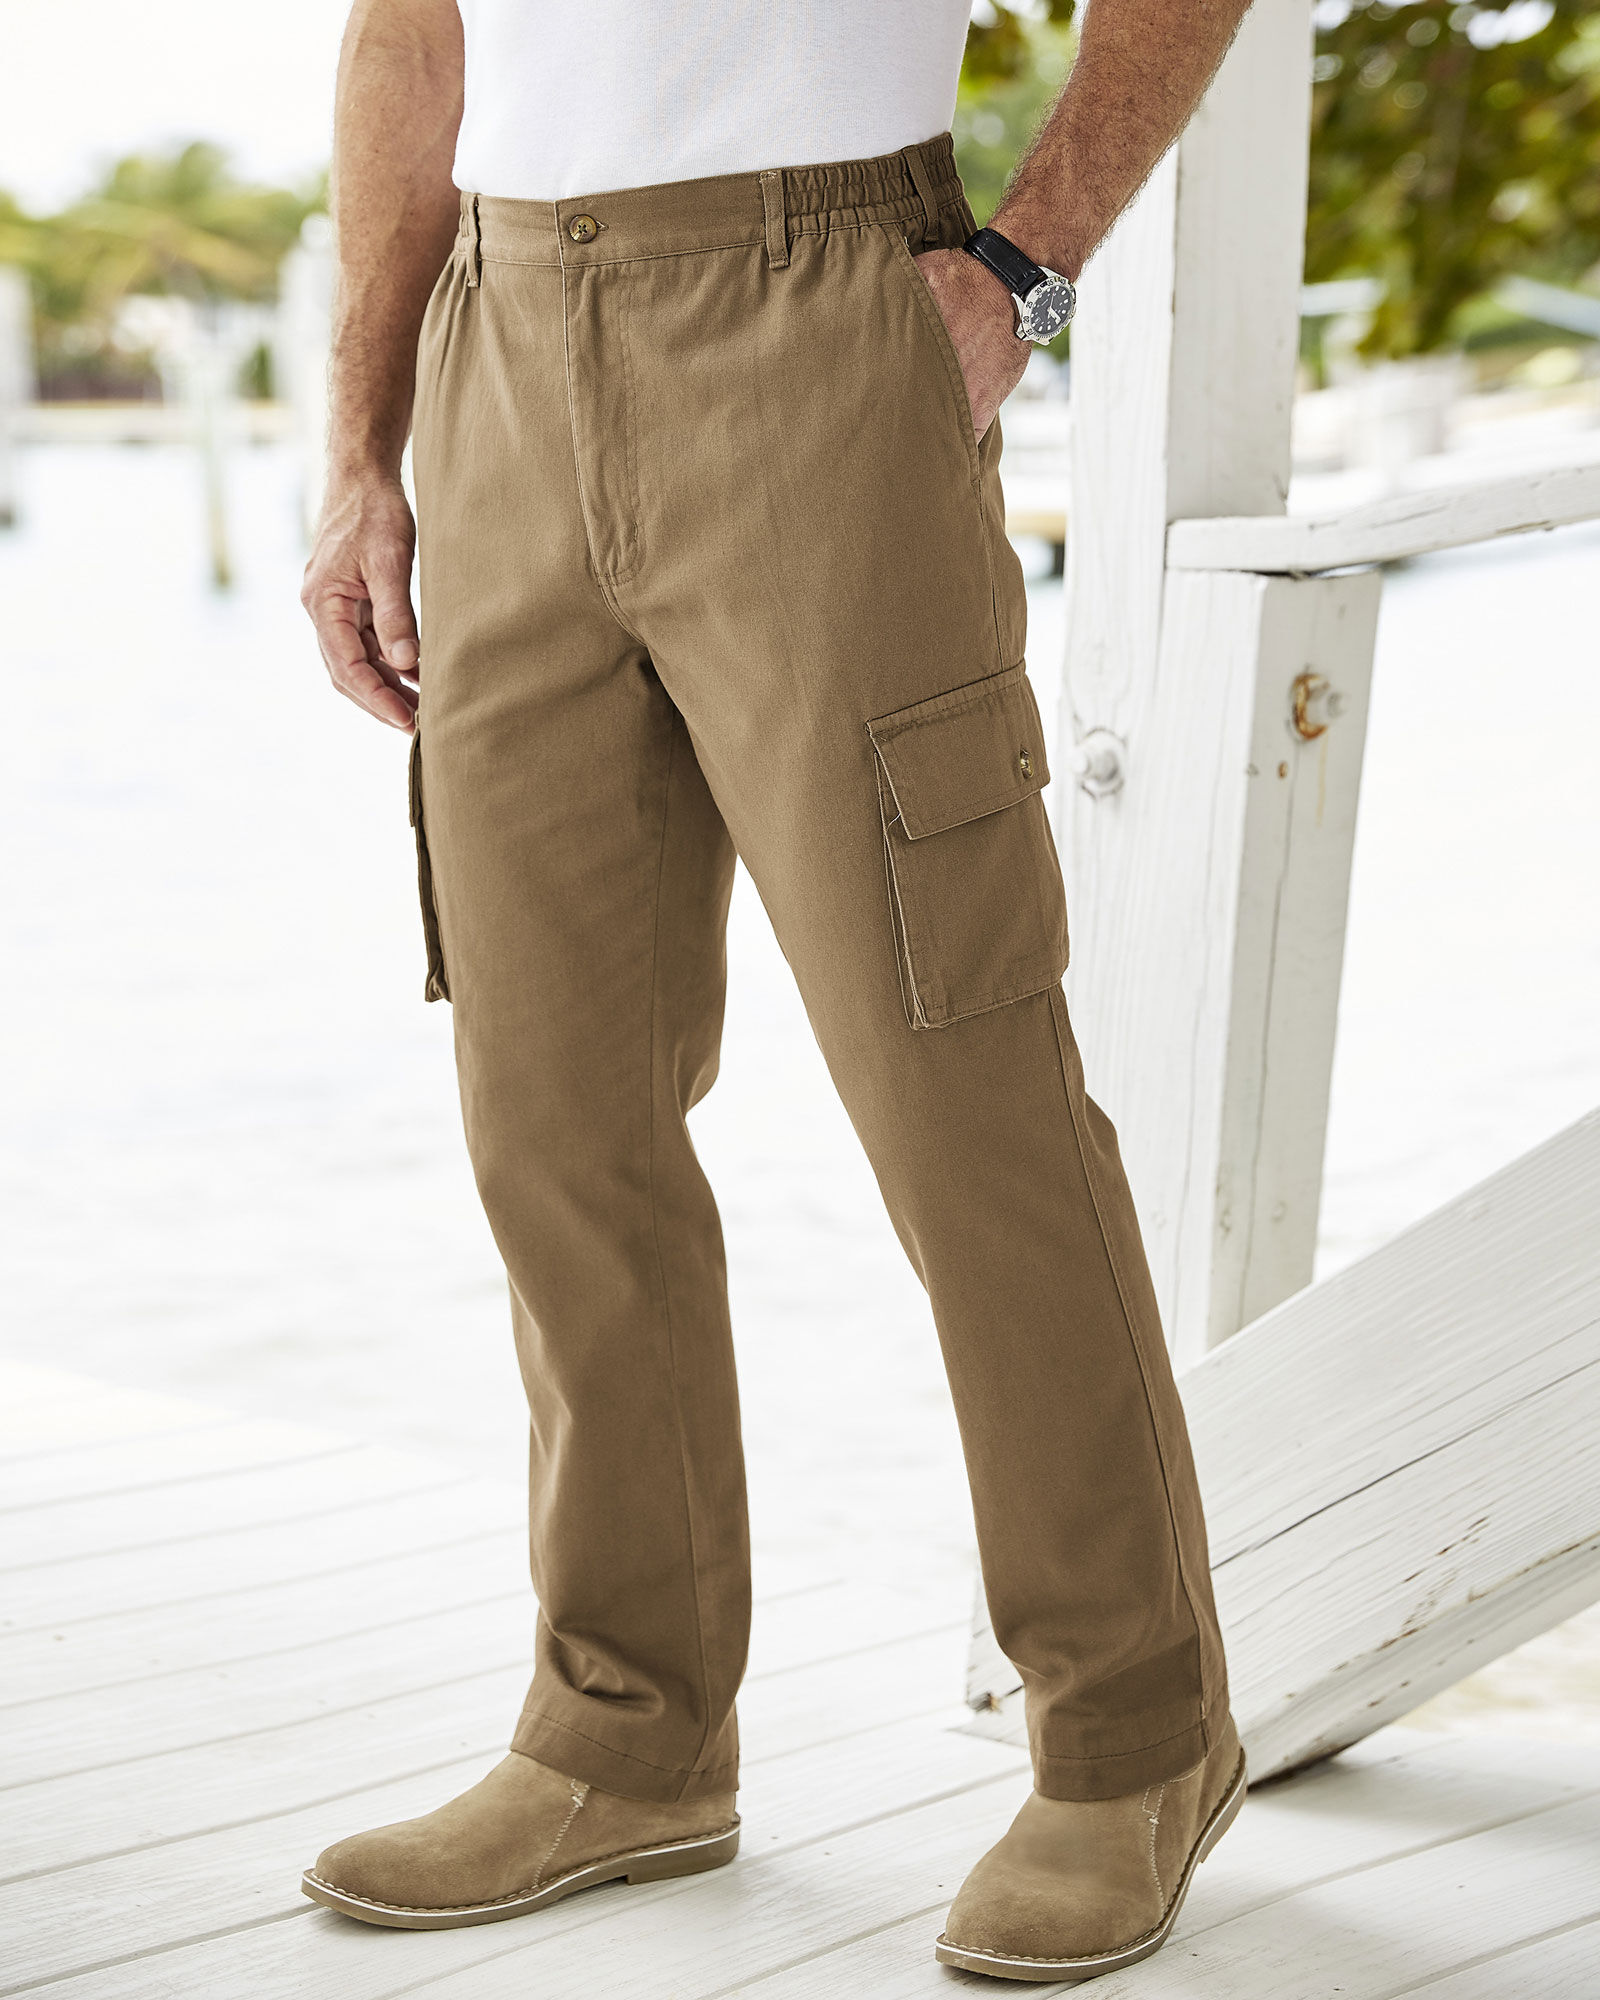 Cotton Casual Unisex Relaxed Trousers in GREEN with cargo side pockets